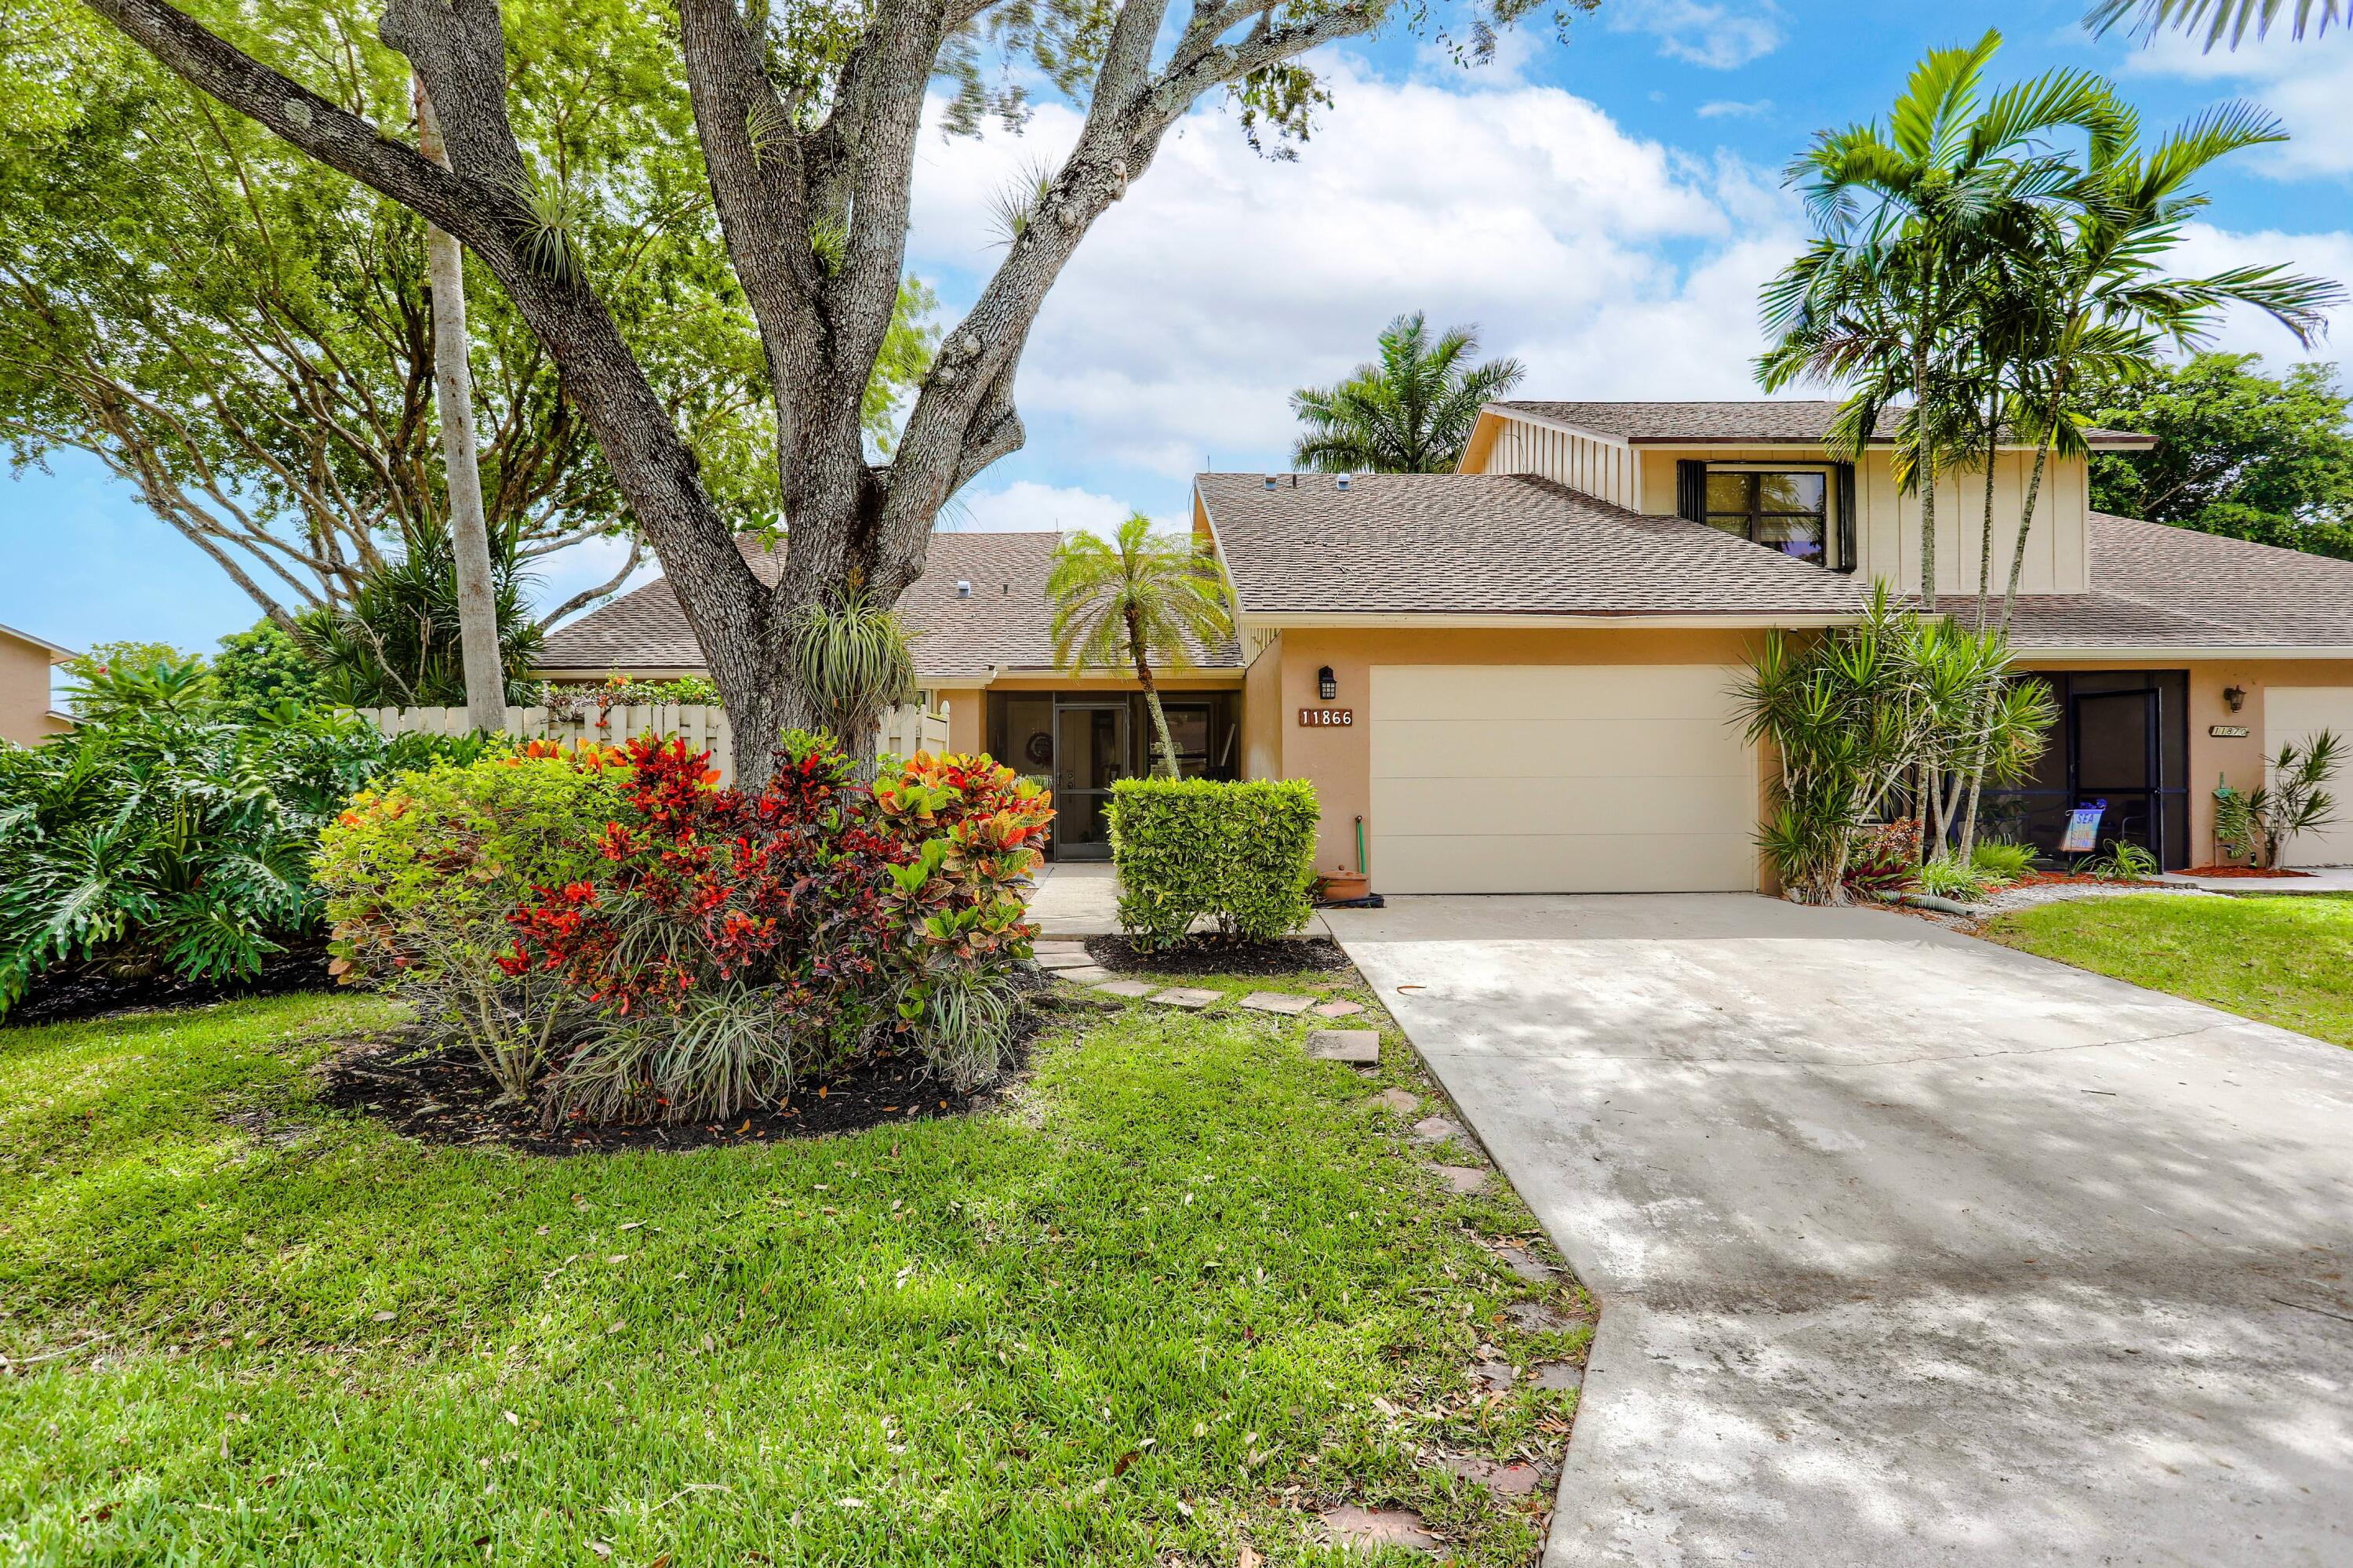 11866  Donlin Drive  For Sale 10740936, FL